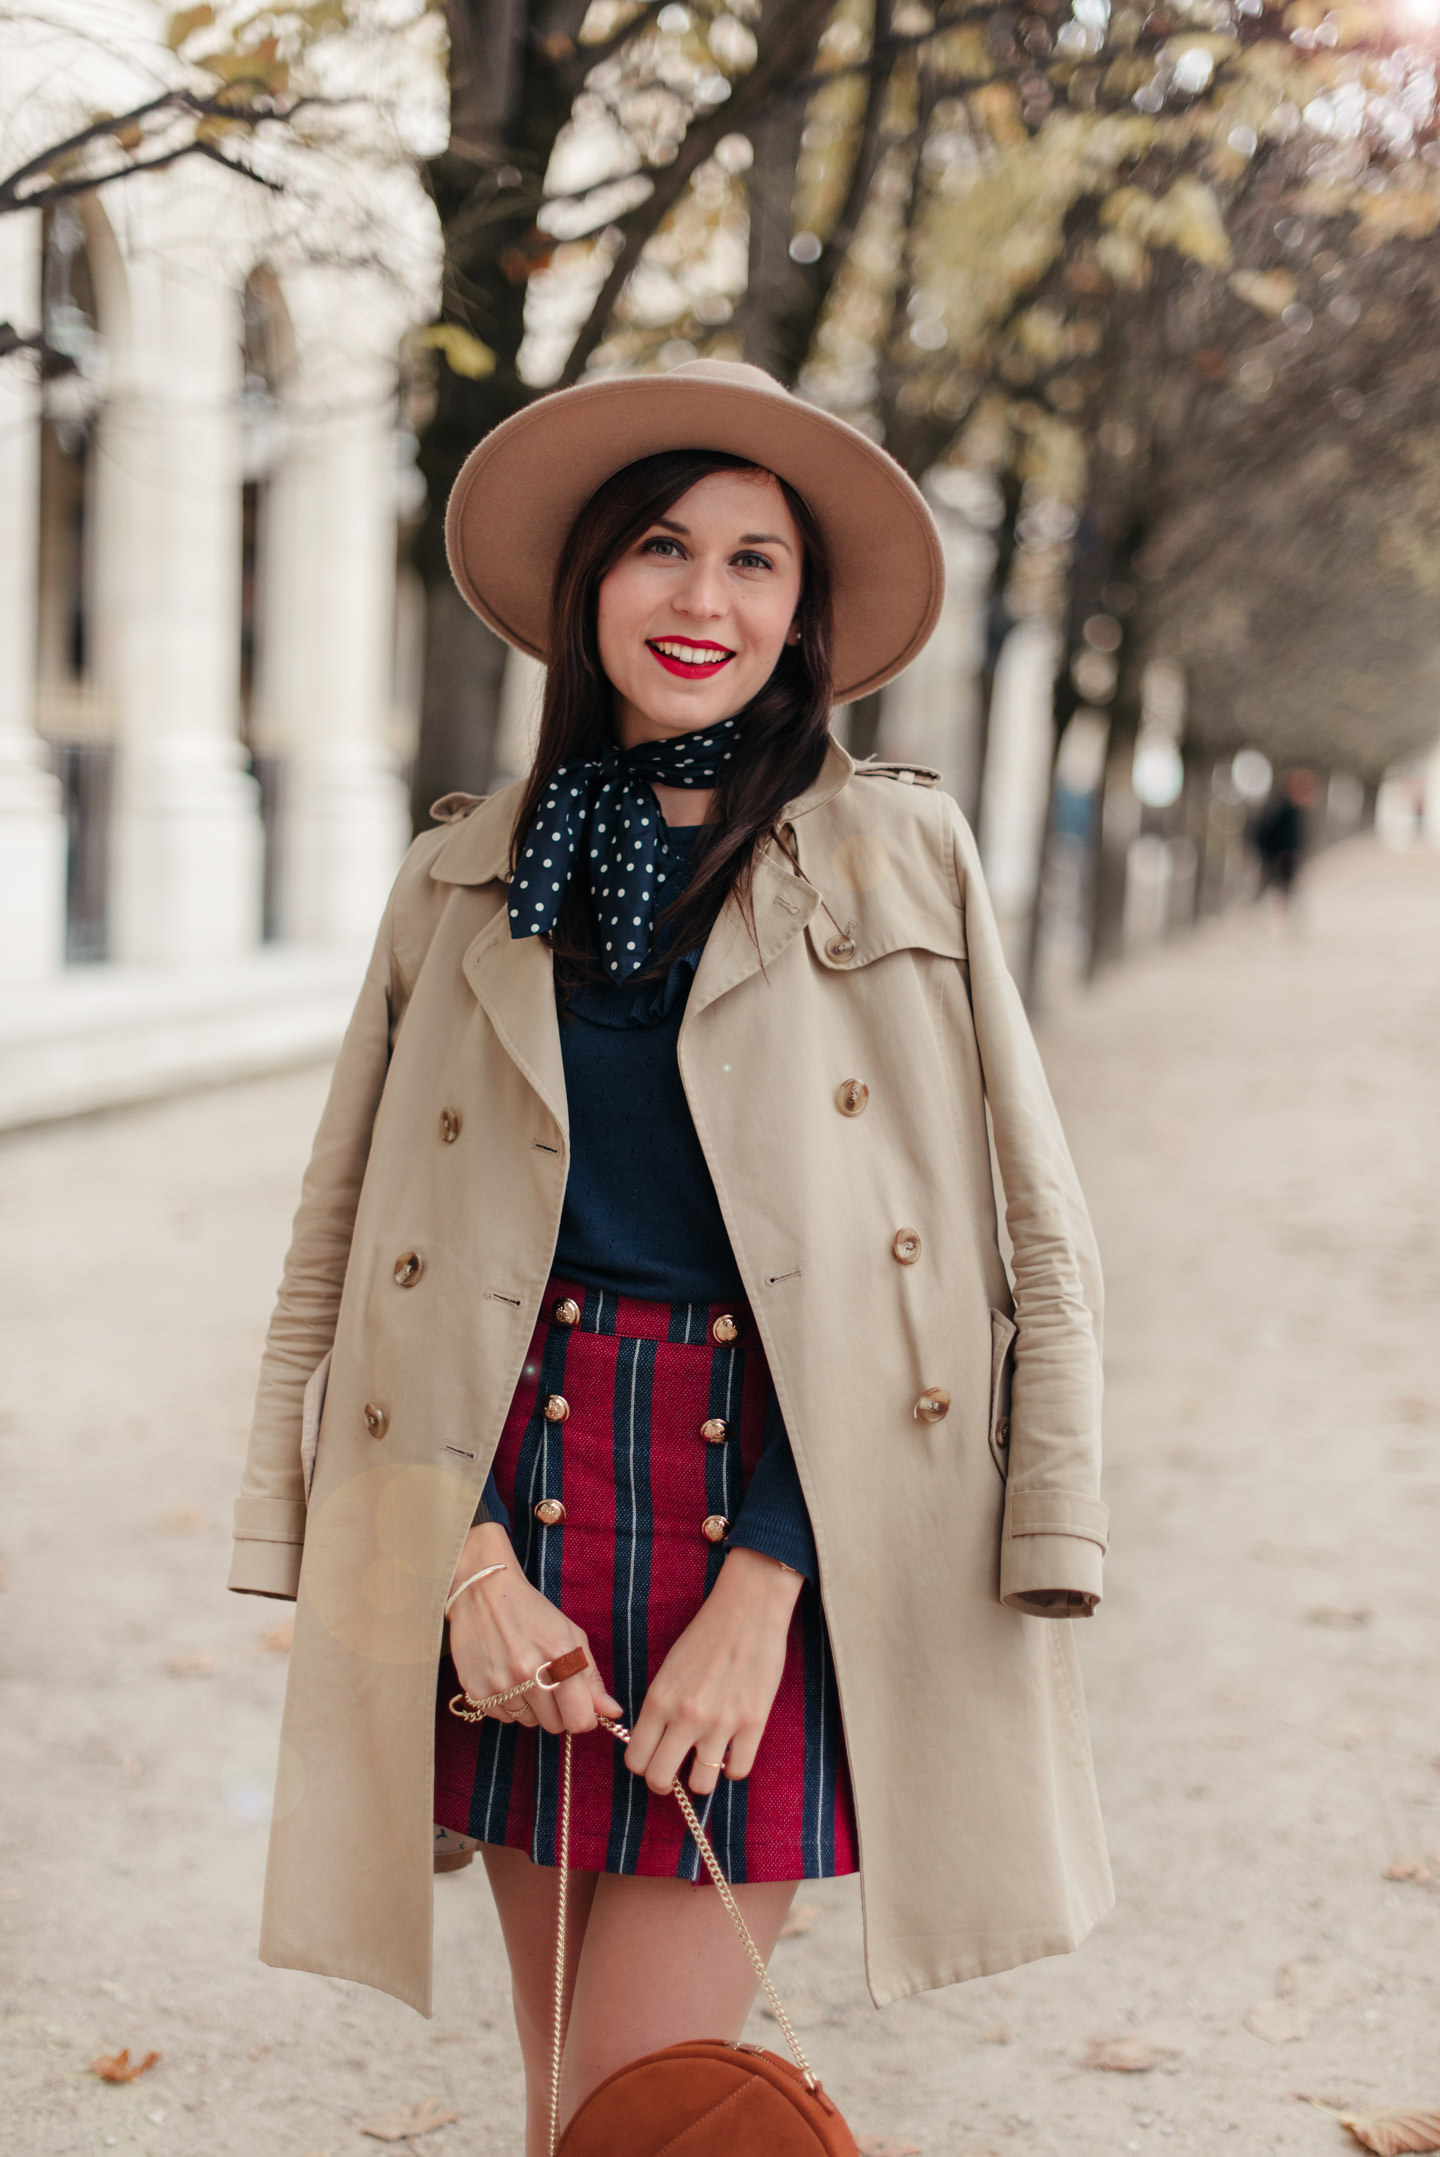 Blog-Mode-And-The-City-Looks-Jupe-Preppy-Automne-Palais-Royal-2